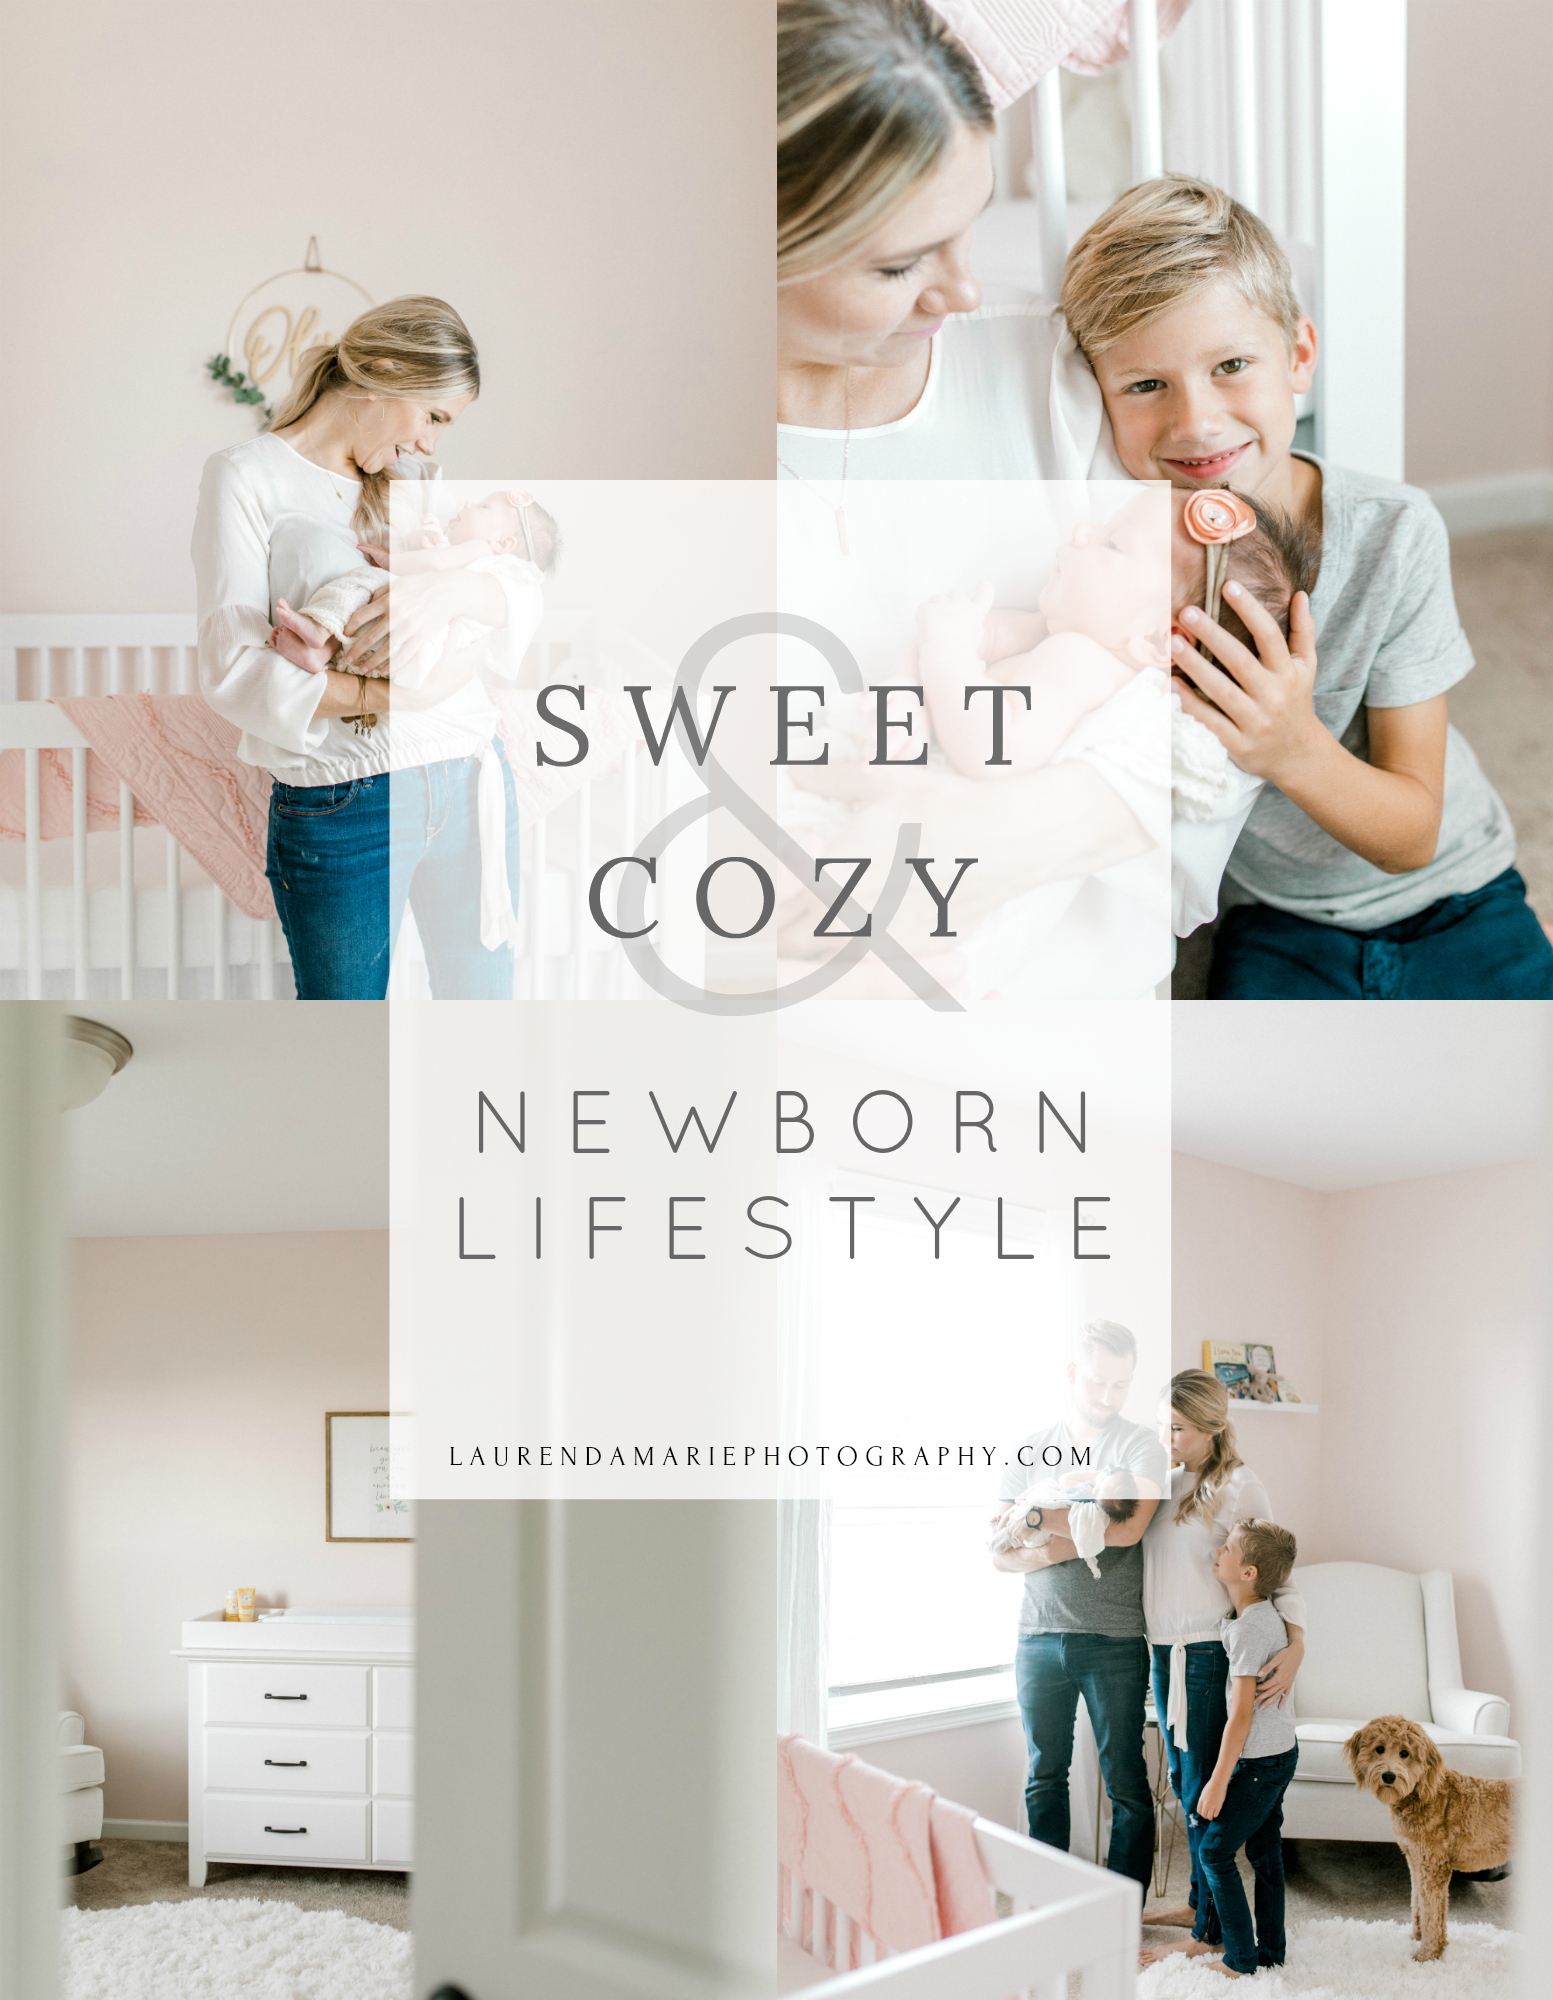 Blush Pink Baby Girl Nursery | Light & Airy Nursery | White, Pink, and Gold Nursery | In-Home Newborn Lifestyle Session | Lifestyle Photography | Laurenda Marie Photography | West Michigan Lifestyle Photographer